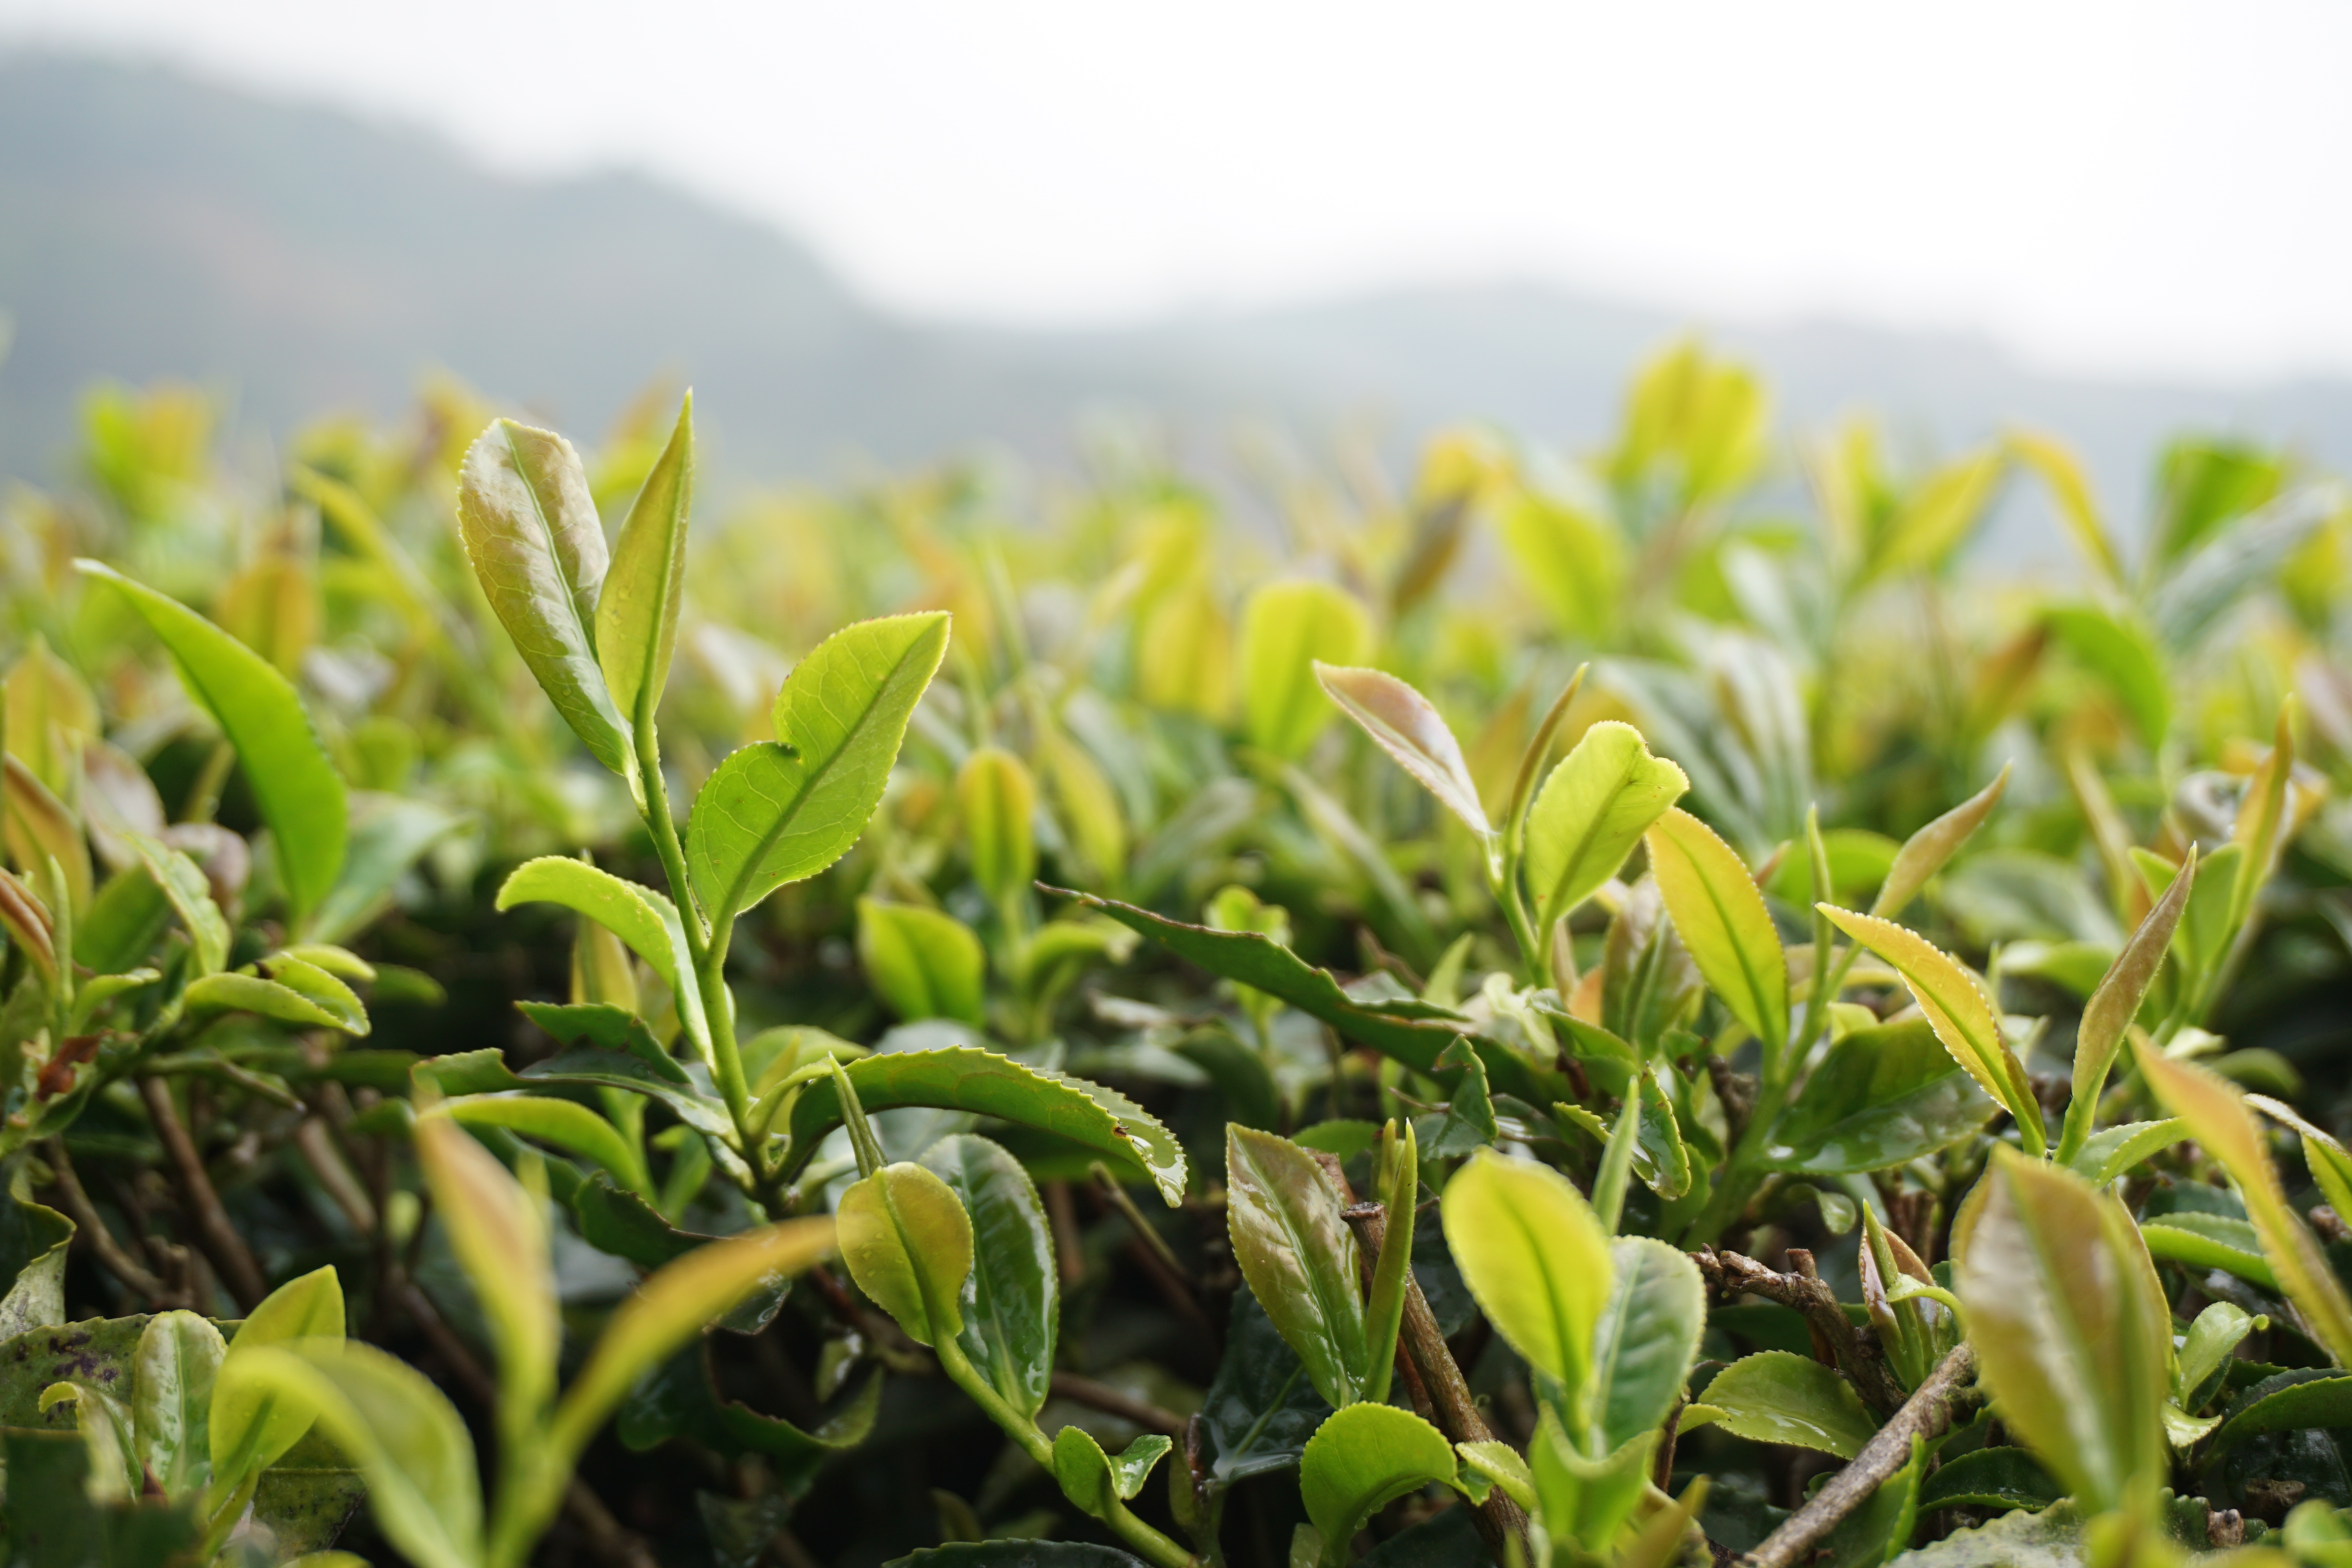 grass-branch-growth-plant-lawn-tea-590701-pxhere.com.jpg